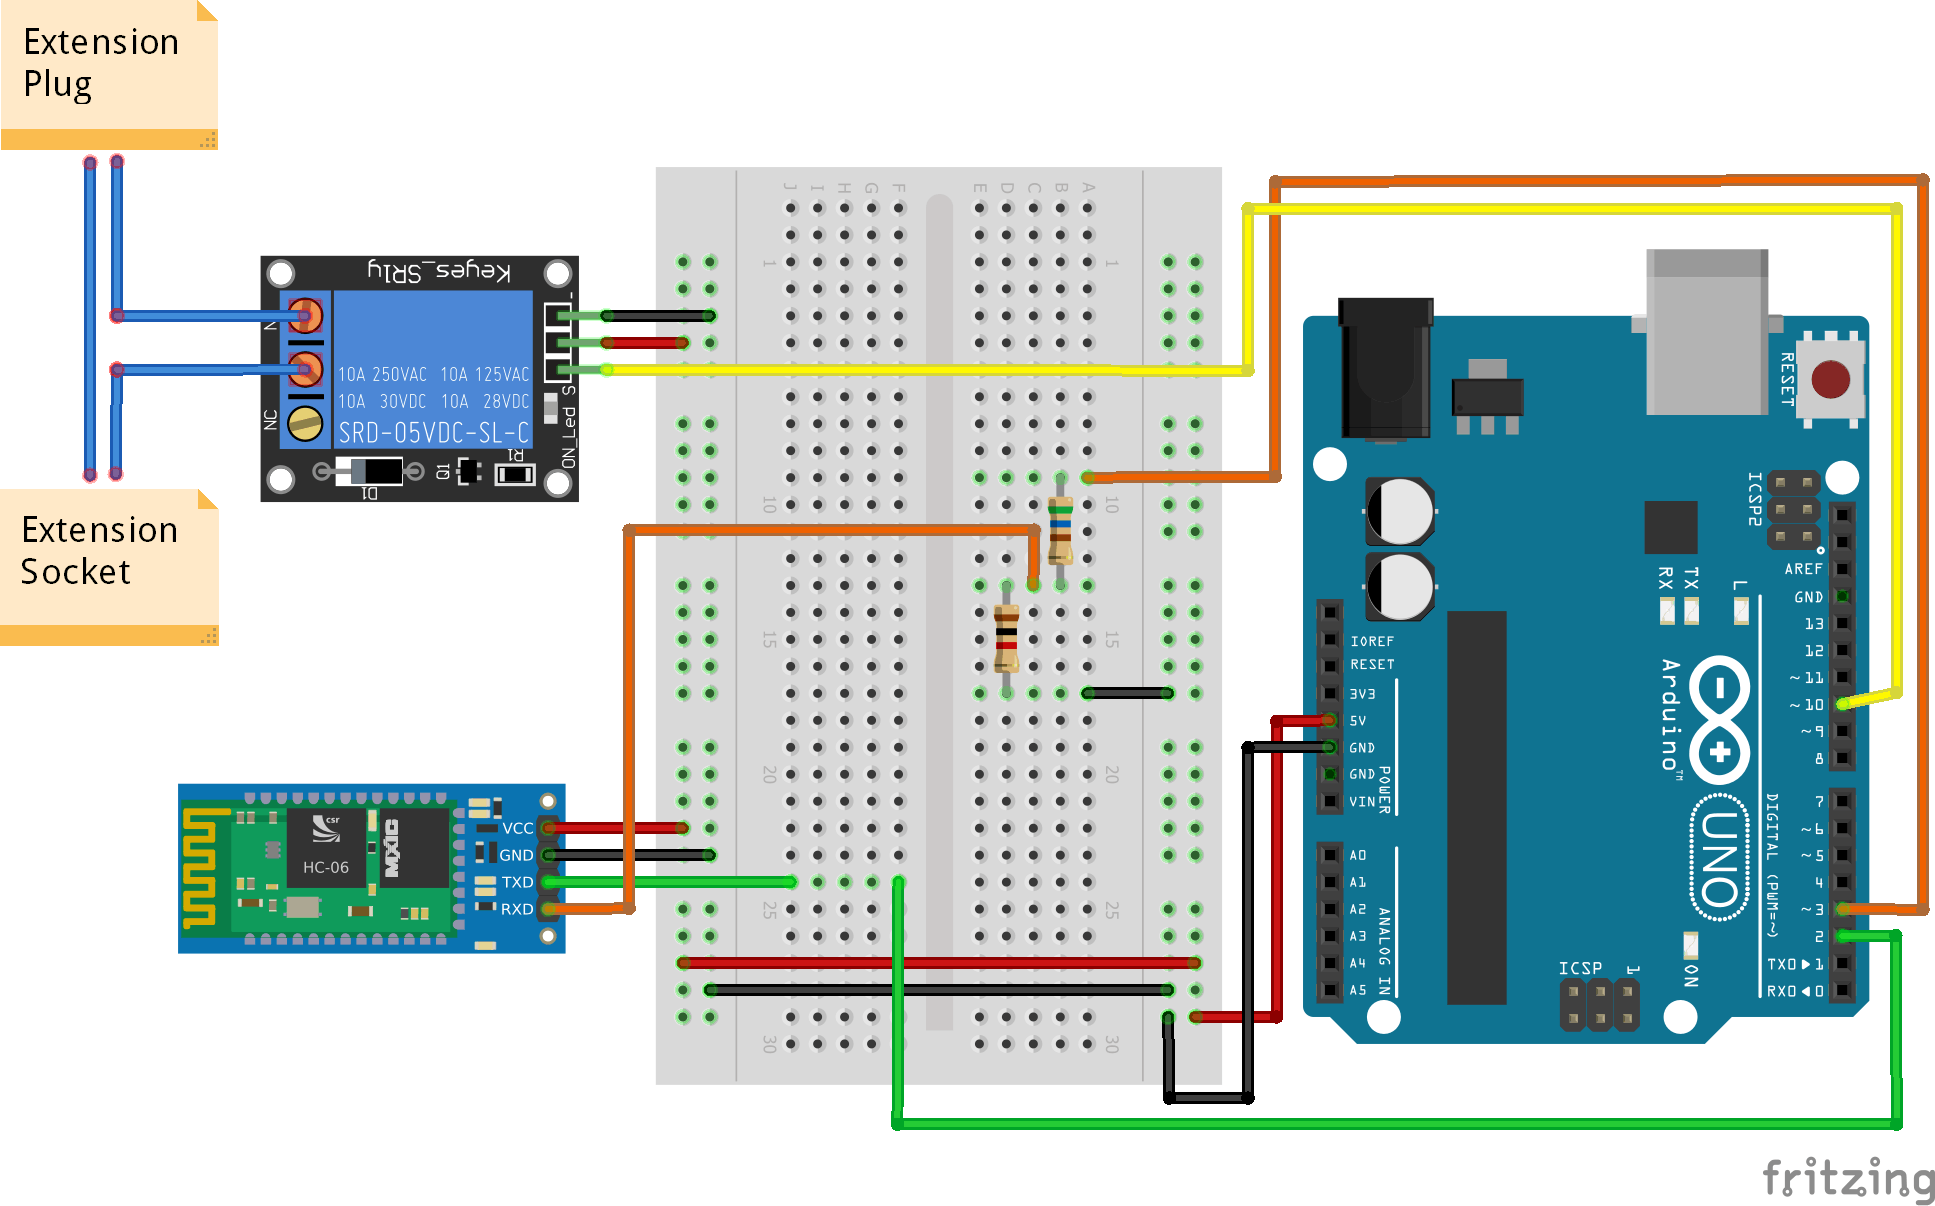 The extension plug and socket could not be represented very well in the breadboard schematic so i took a photo ( in the next photo )